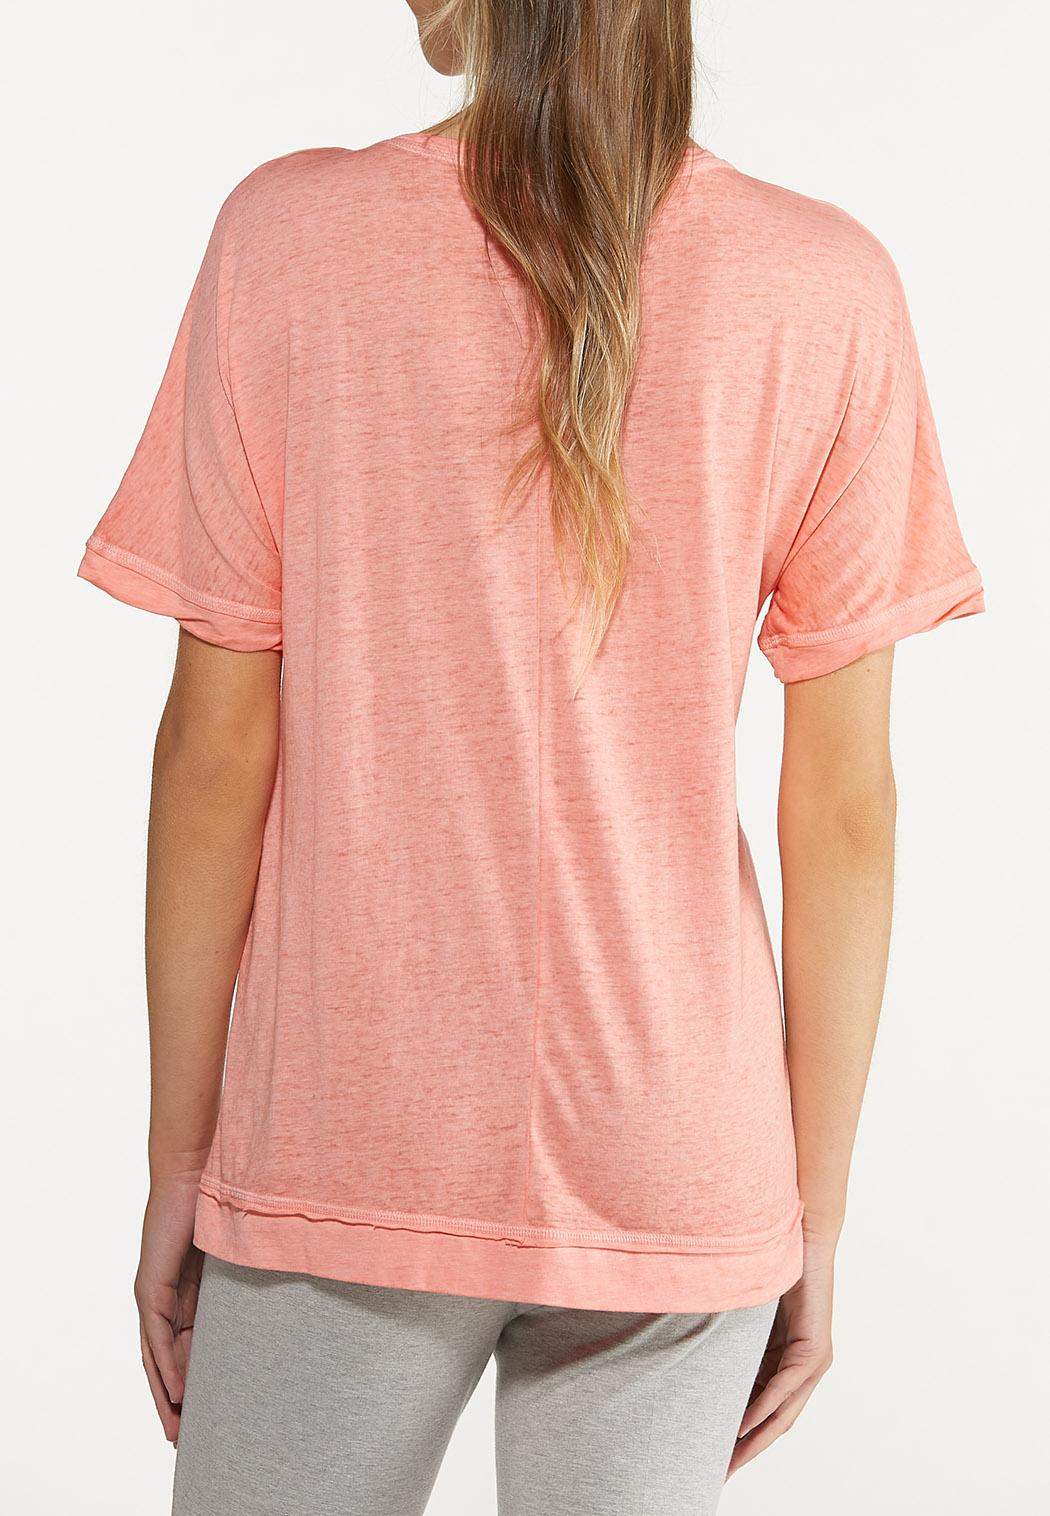 Plus Size Calm Mind Strong Heart Tee (Item #44627376)